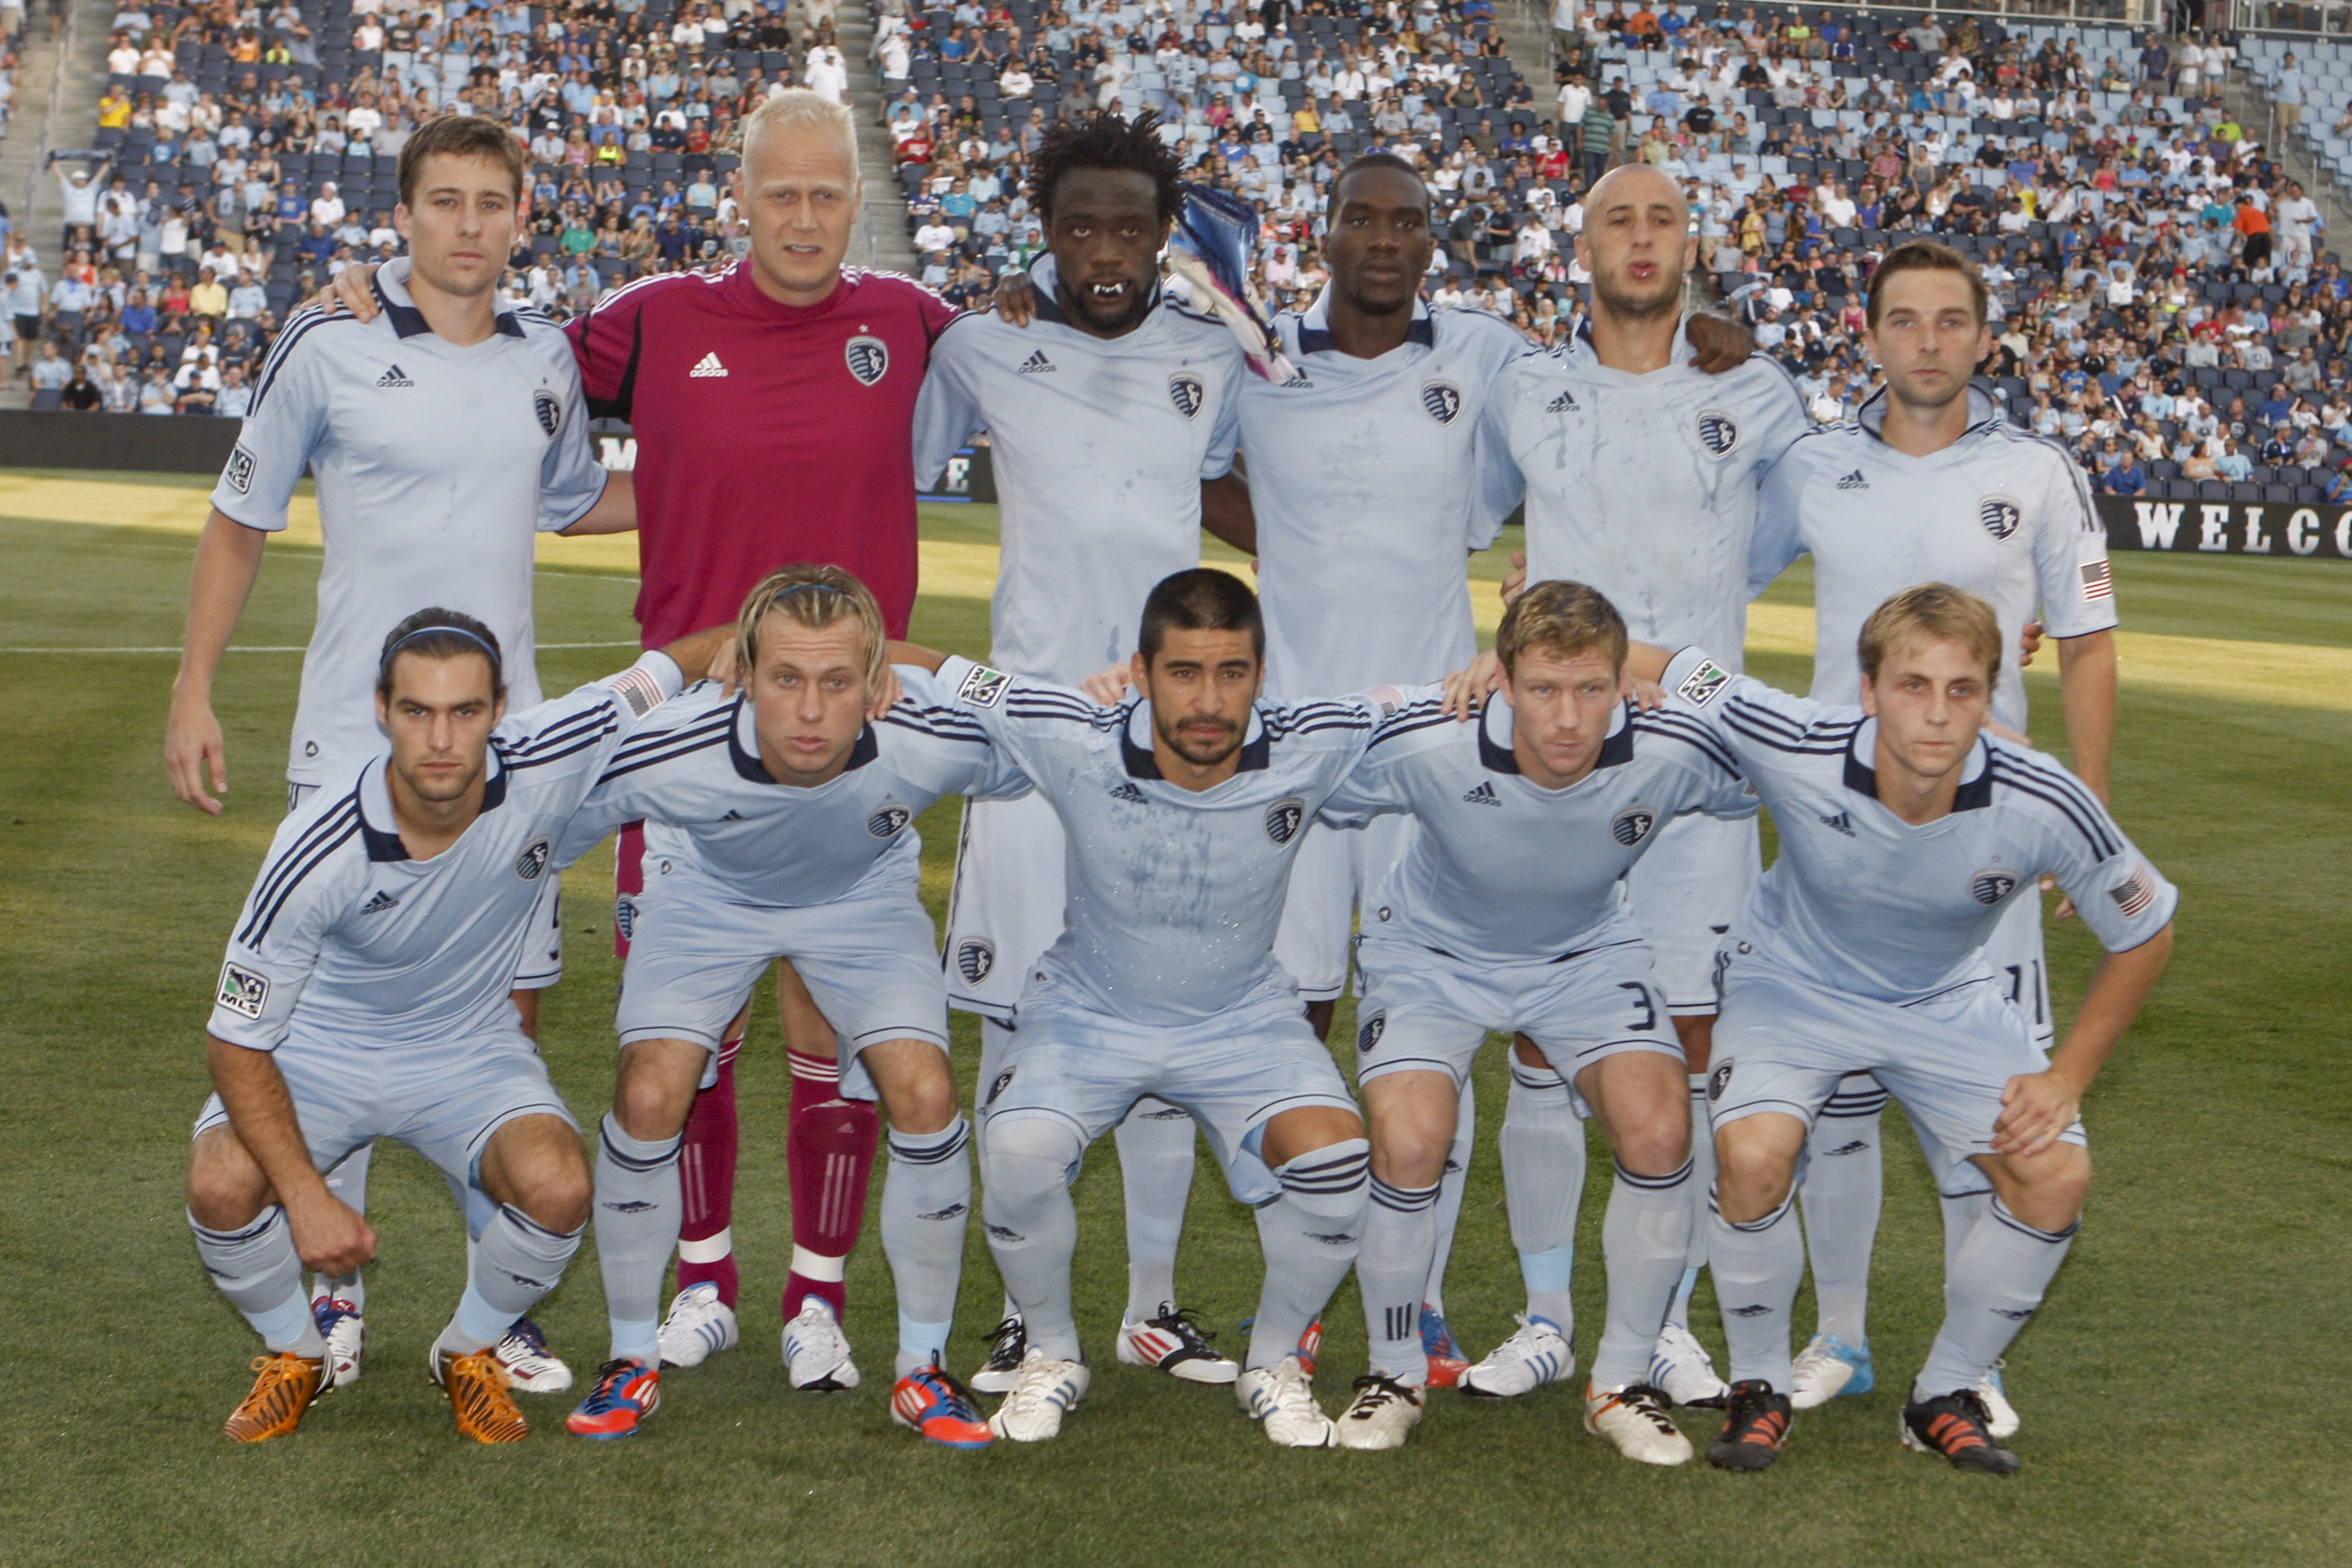 KANSAS CITY, KS - JULY 21: Sporting KC poses for a group photo before the game against the New England Revolution at Livestrong Sporting Park on July 21, 2012 in Kansas City, Kansas.  (Photo by Kyle Rivas/Getty Images)